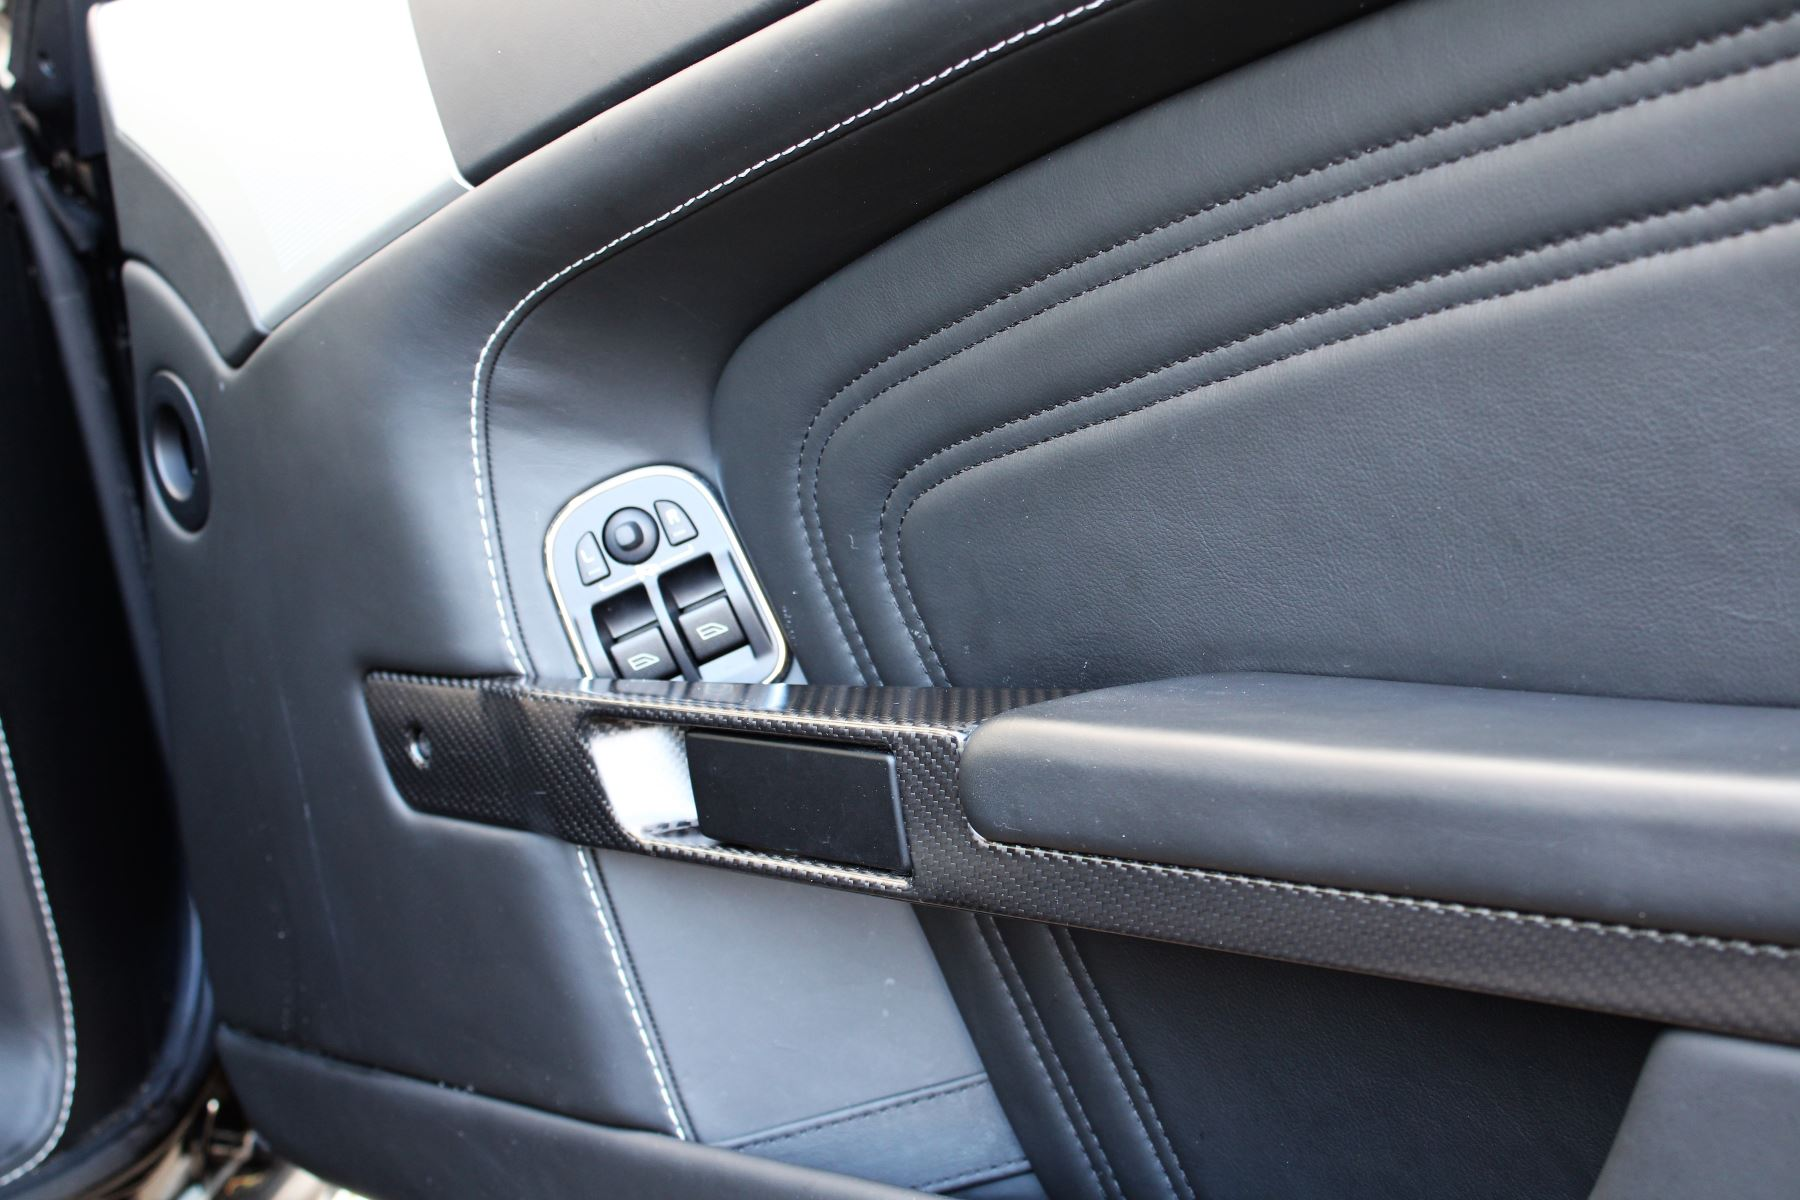 Aston Martin DBS V12 CARBON EDITION 2dr Touchtronic image 12